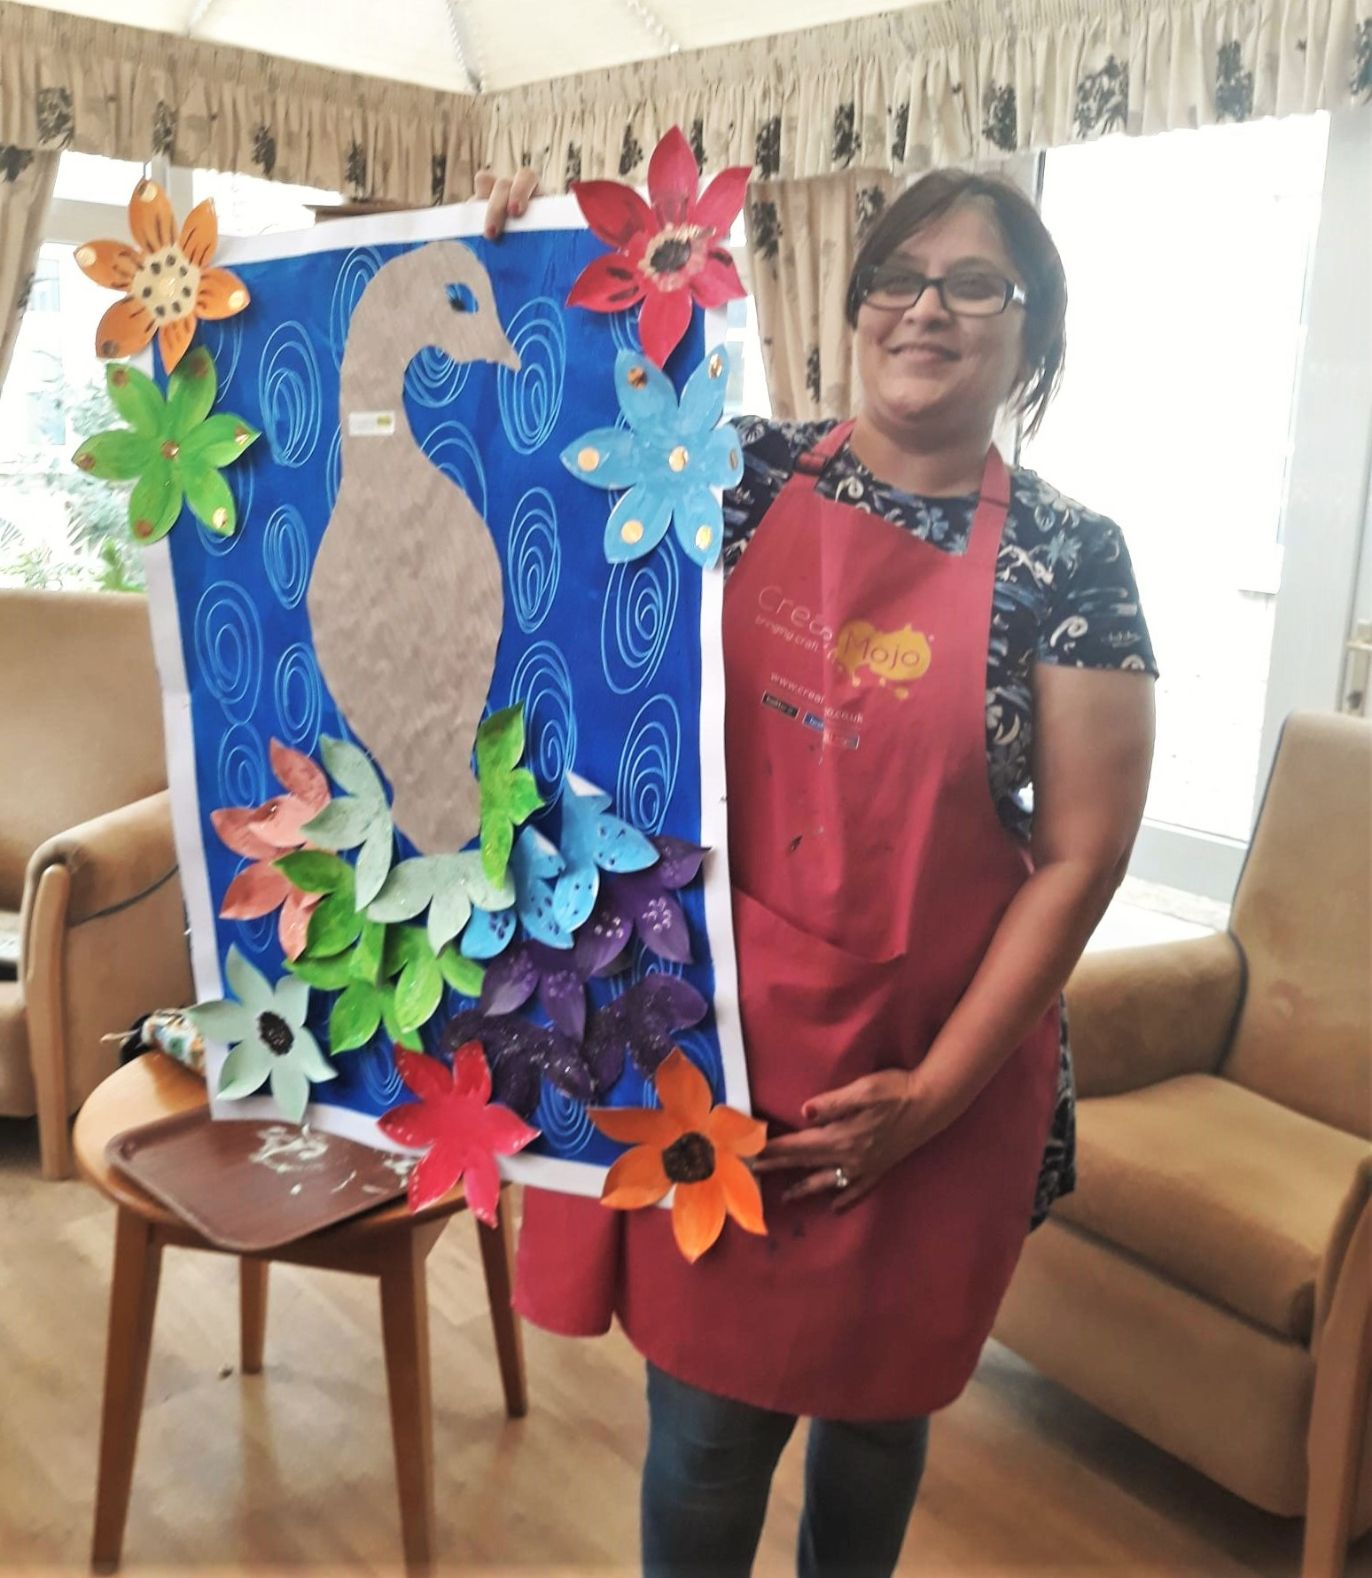 Residents at Highfield Care Home in Ware enjoy art sessions